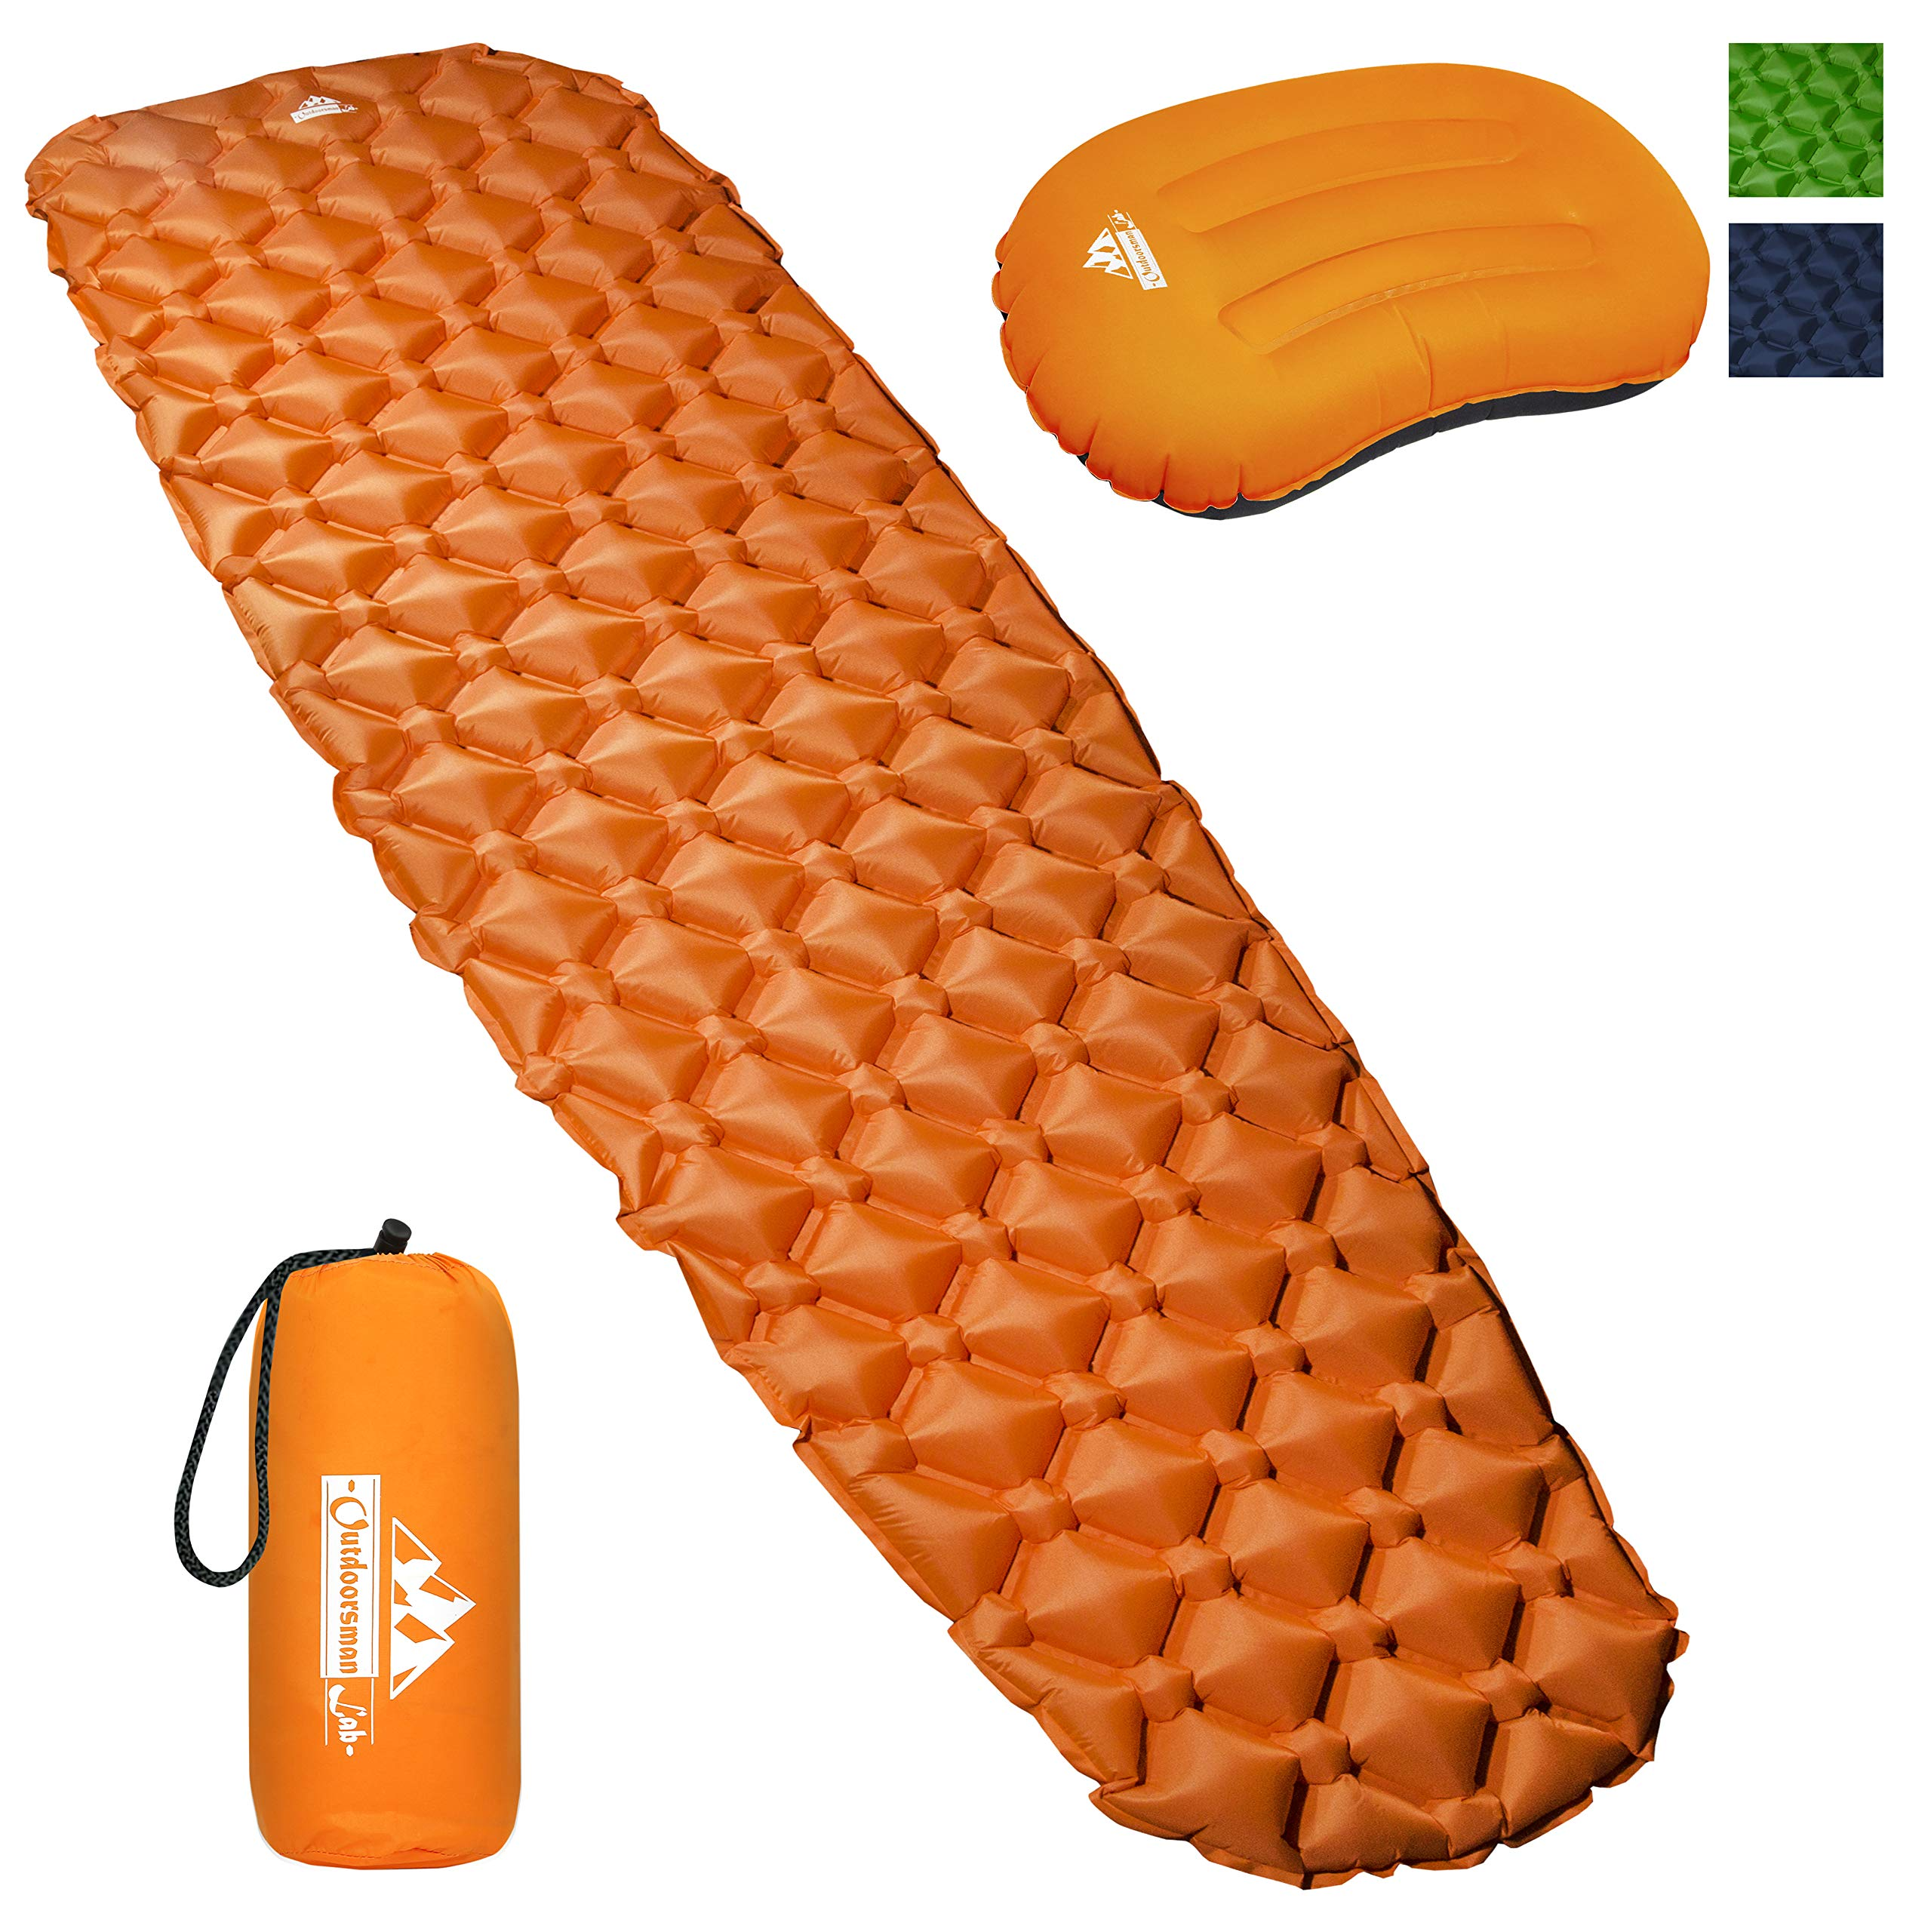 Outdoorsman Lab Camping Sleeping Pad | Ultralight Inflatable Camping Mat Pad for Backpacking & Hiking | Durable Insulated Sleeping Mat, Compact Carrying Bag and Repair Kit (Orange Bundle with Pillow) by Outdoorsman Lab